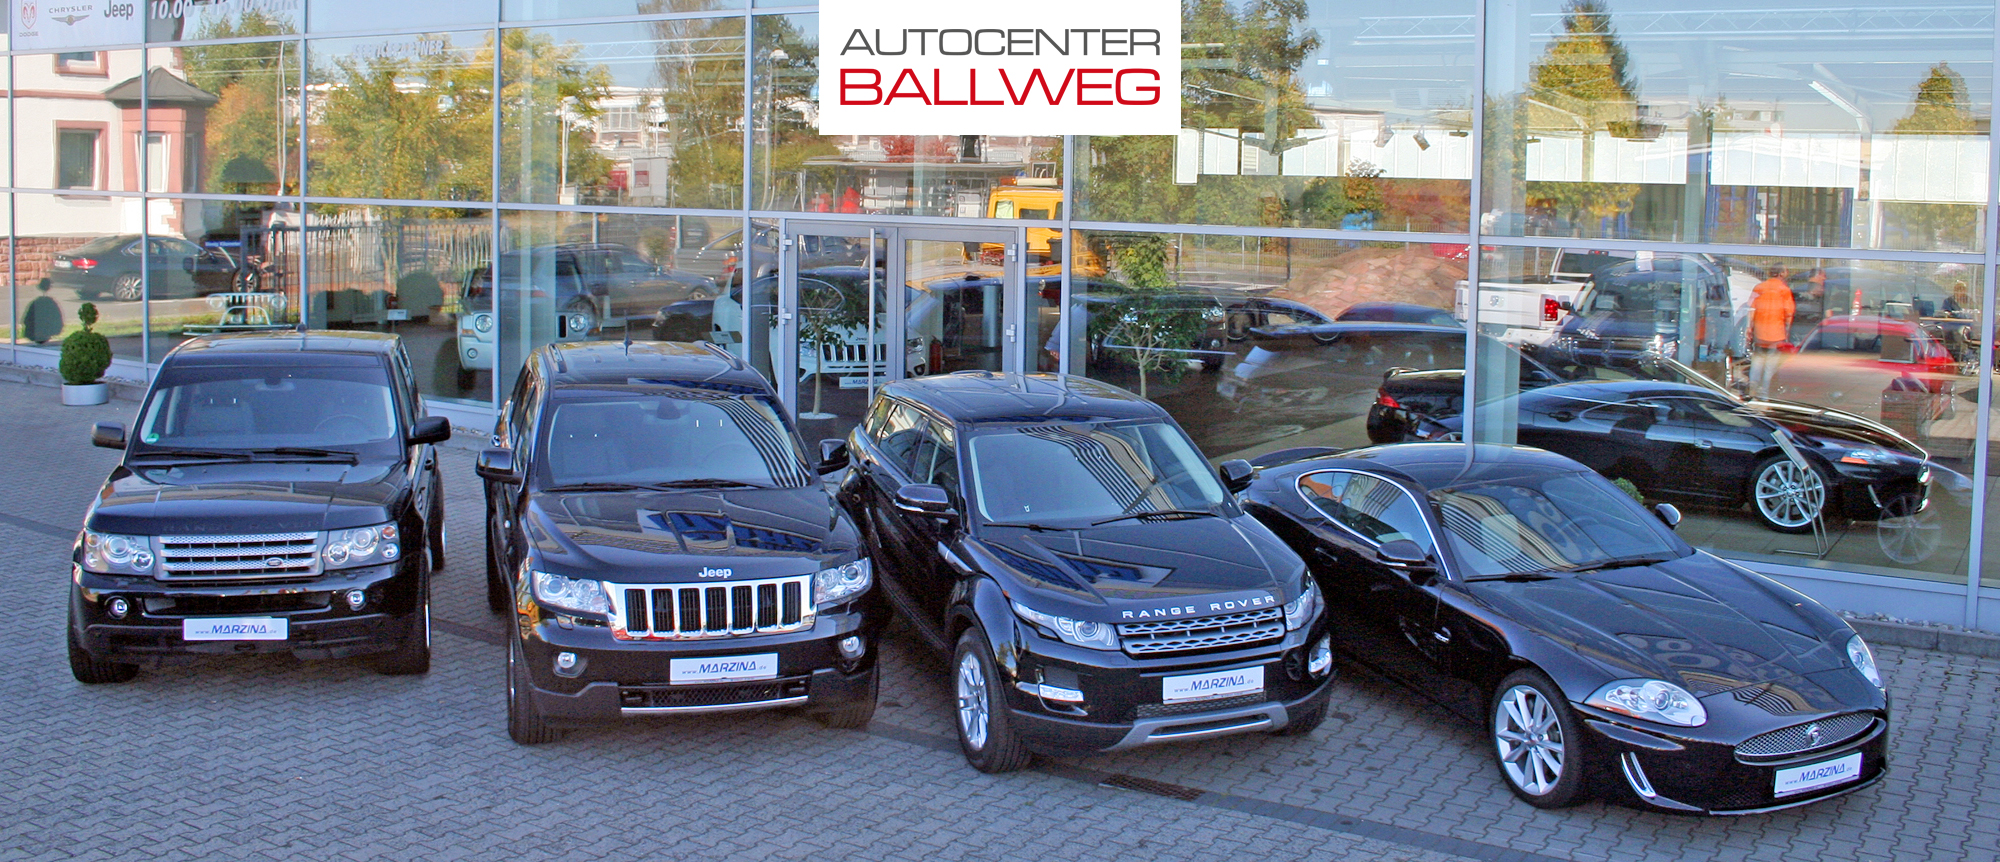 autocenter-ballweg-slider